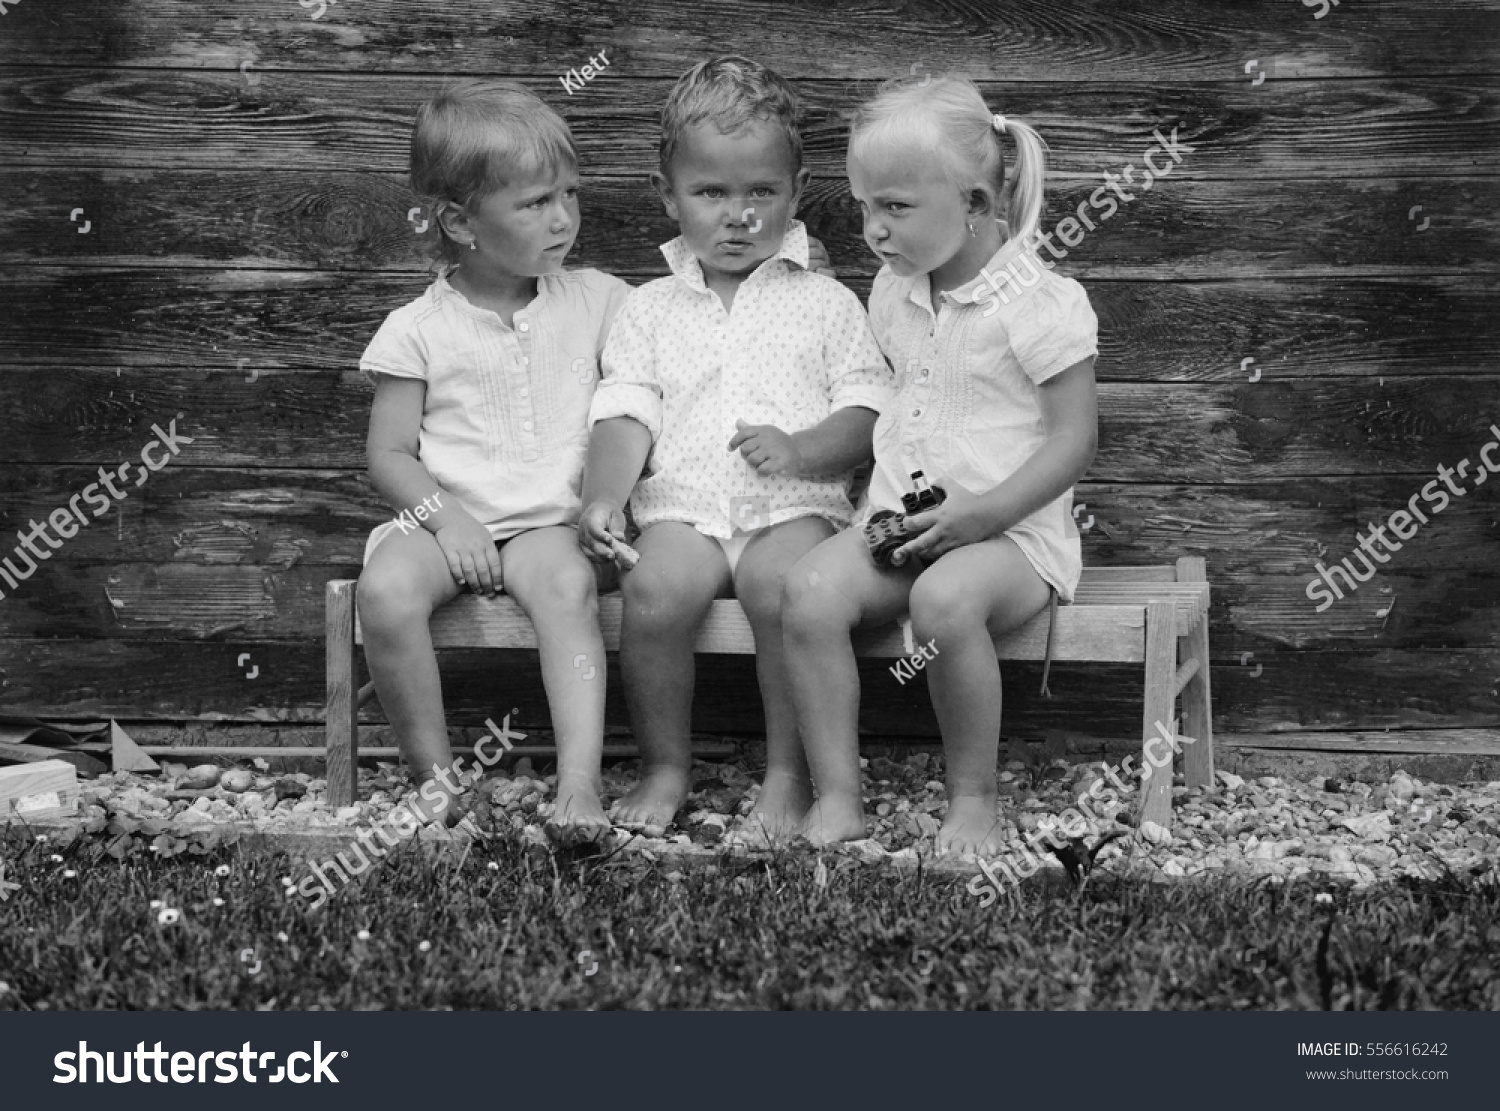 Black And White Photography Of Happy Children Talking On A Wooden Bench Little Friends Enjoying